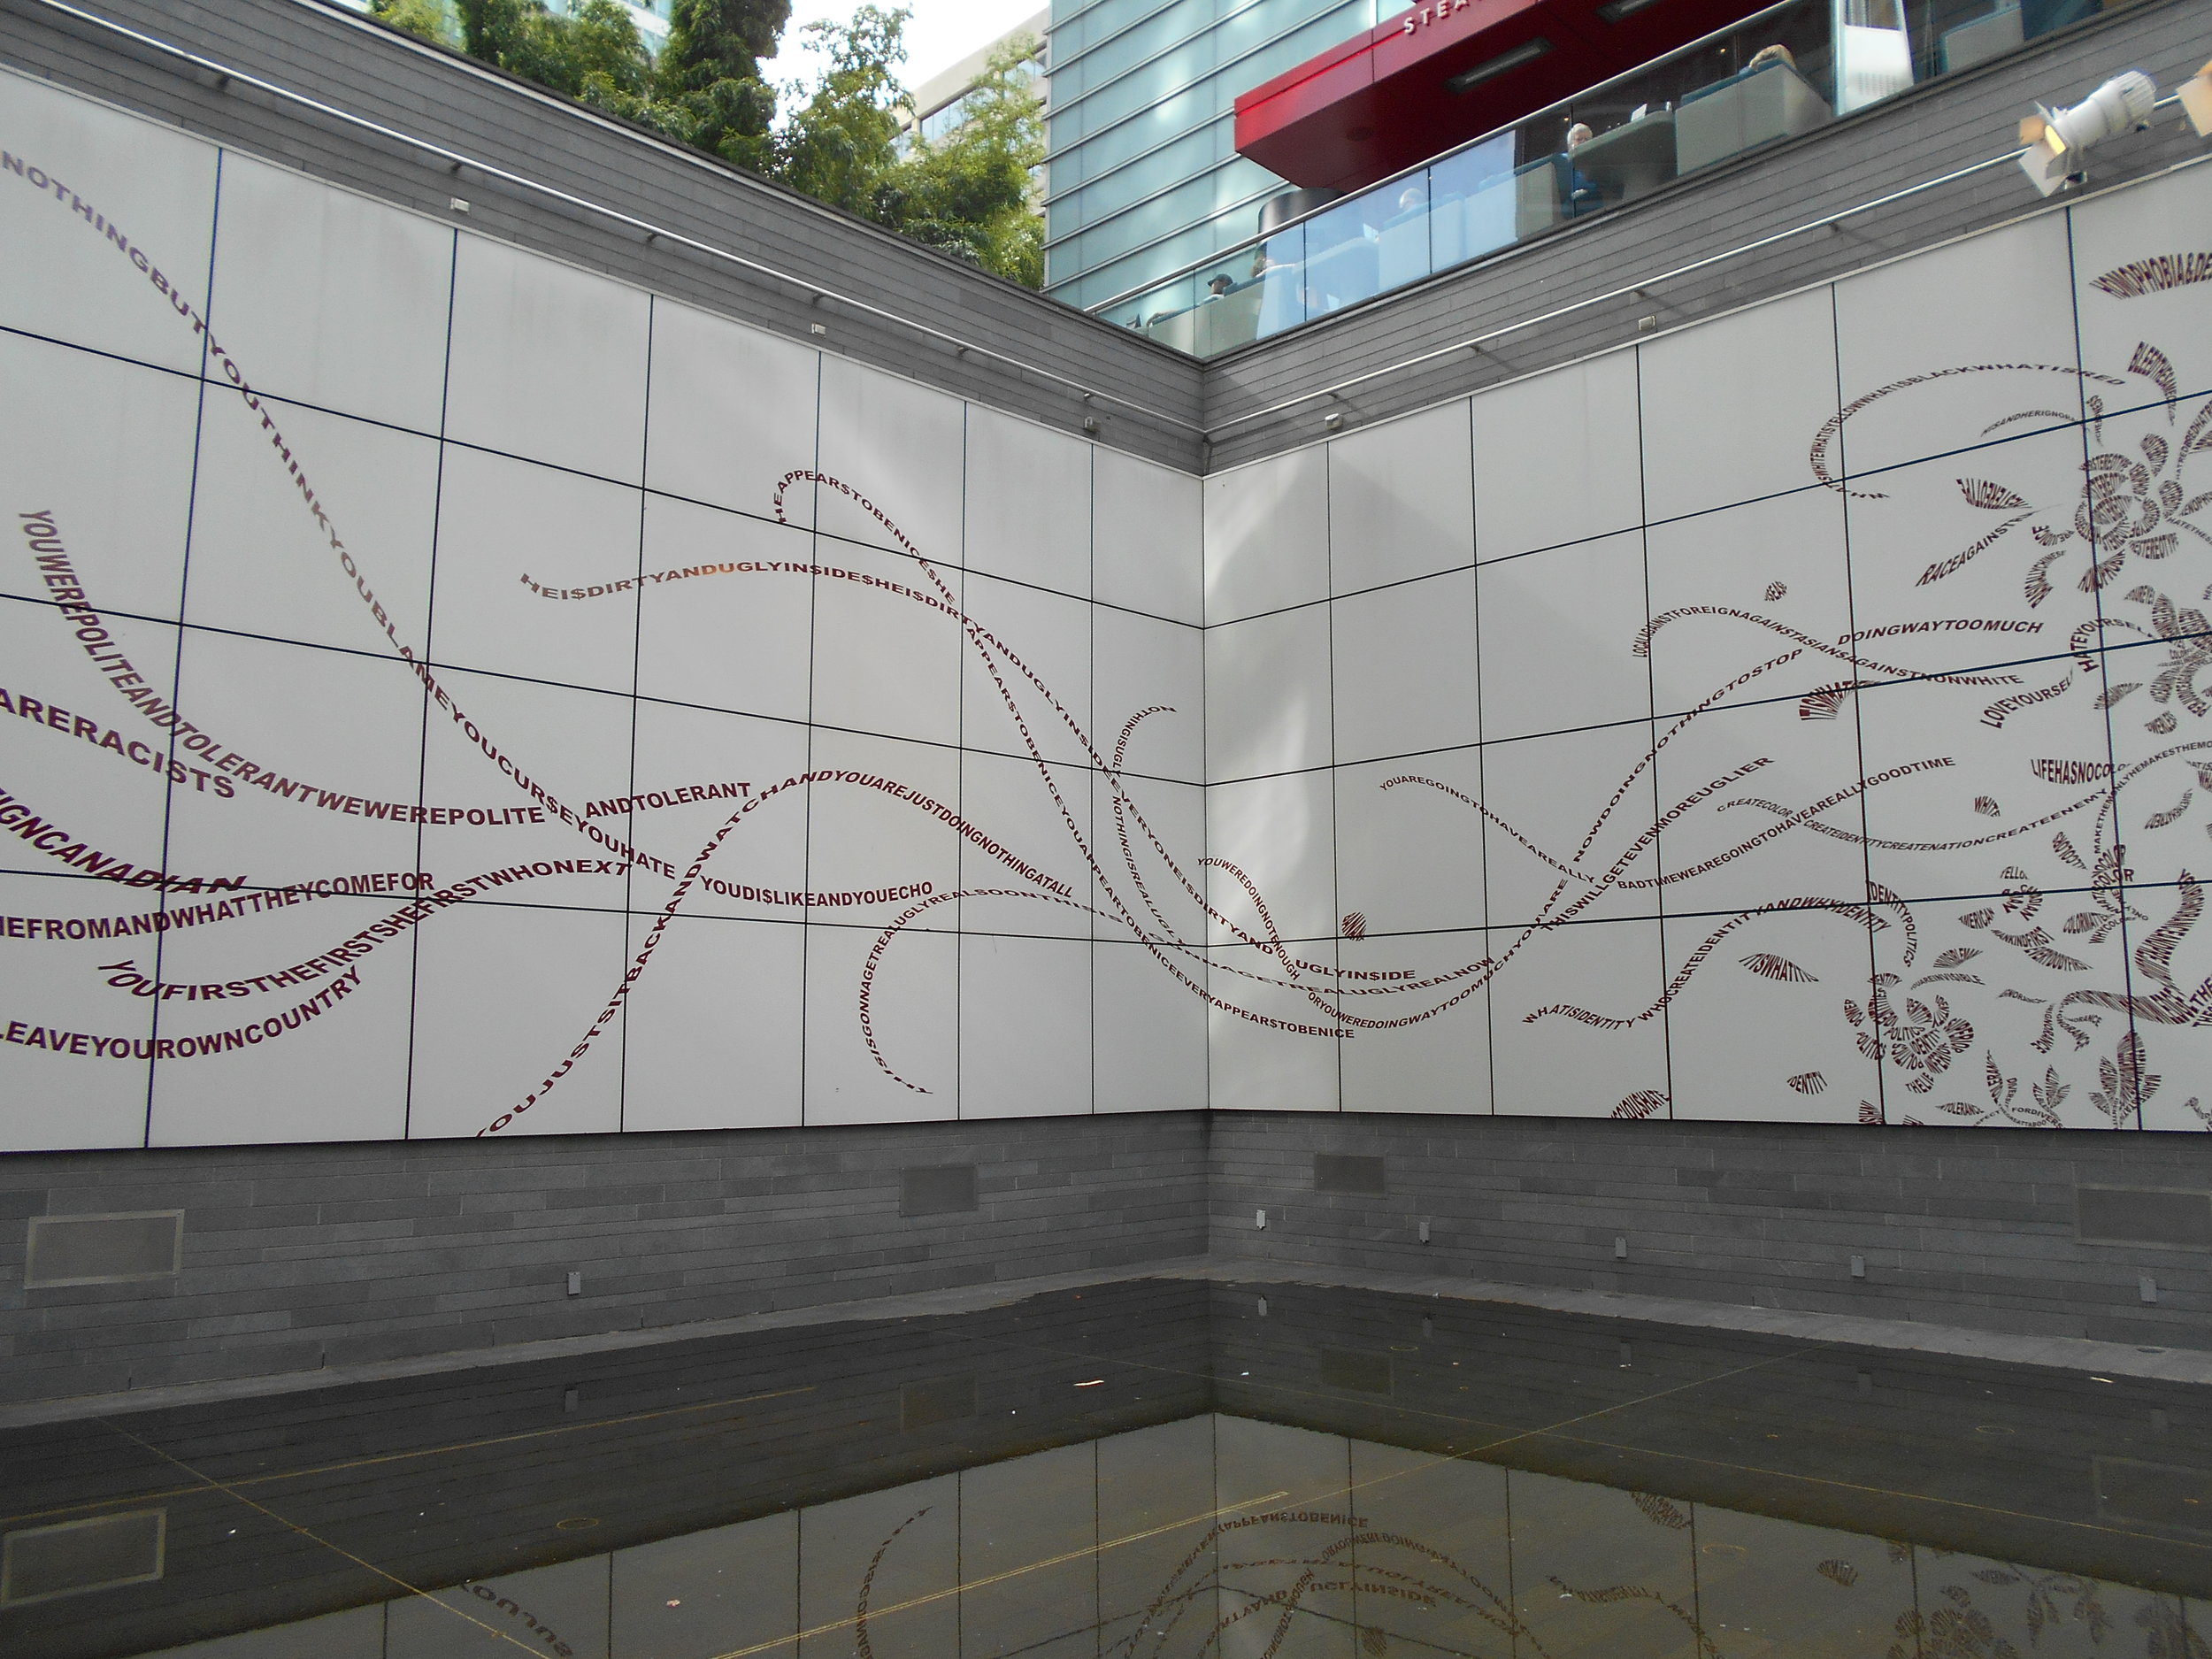 Apex of Tsang sculpture - an overall look at the main part of the installation. (click on images to enlarge)